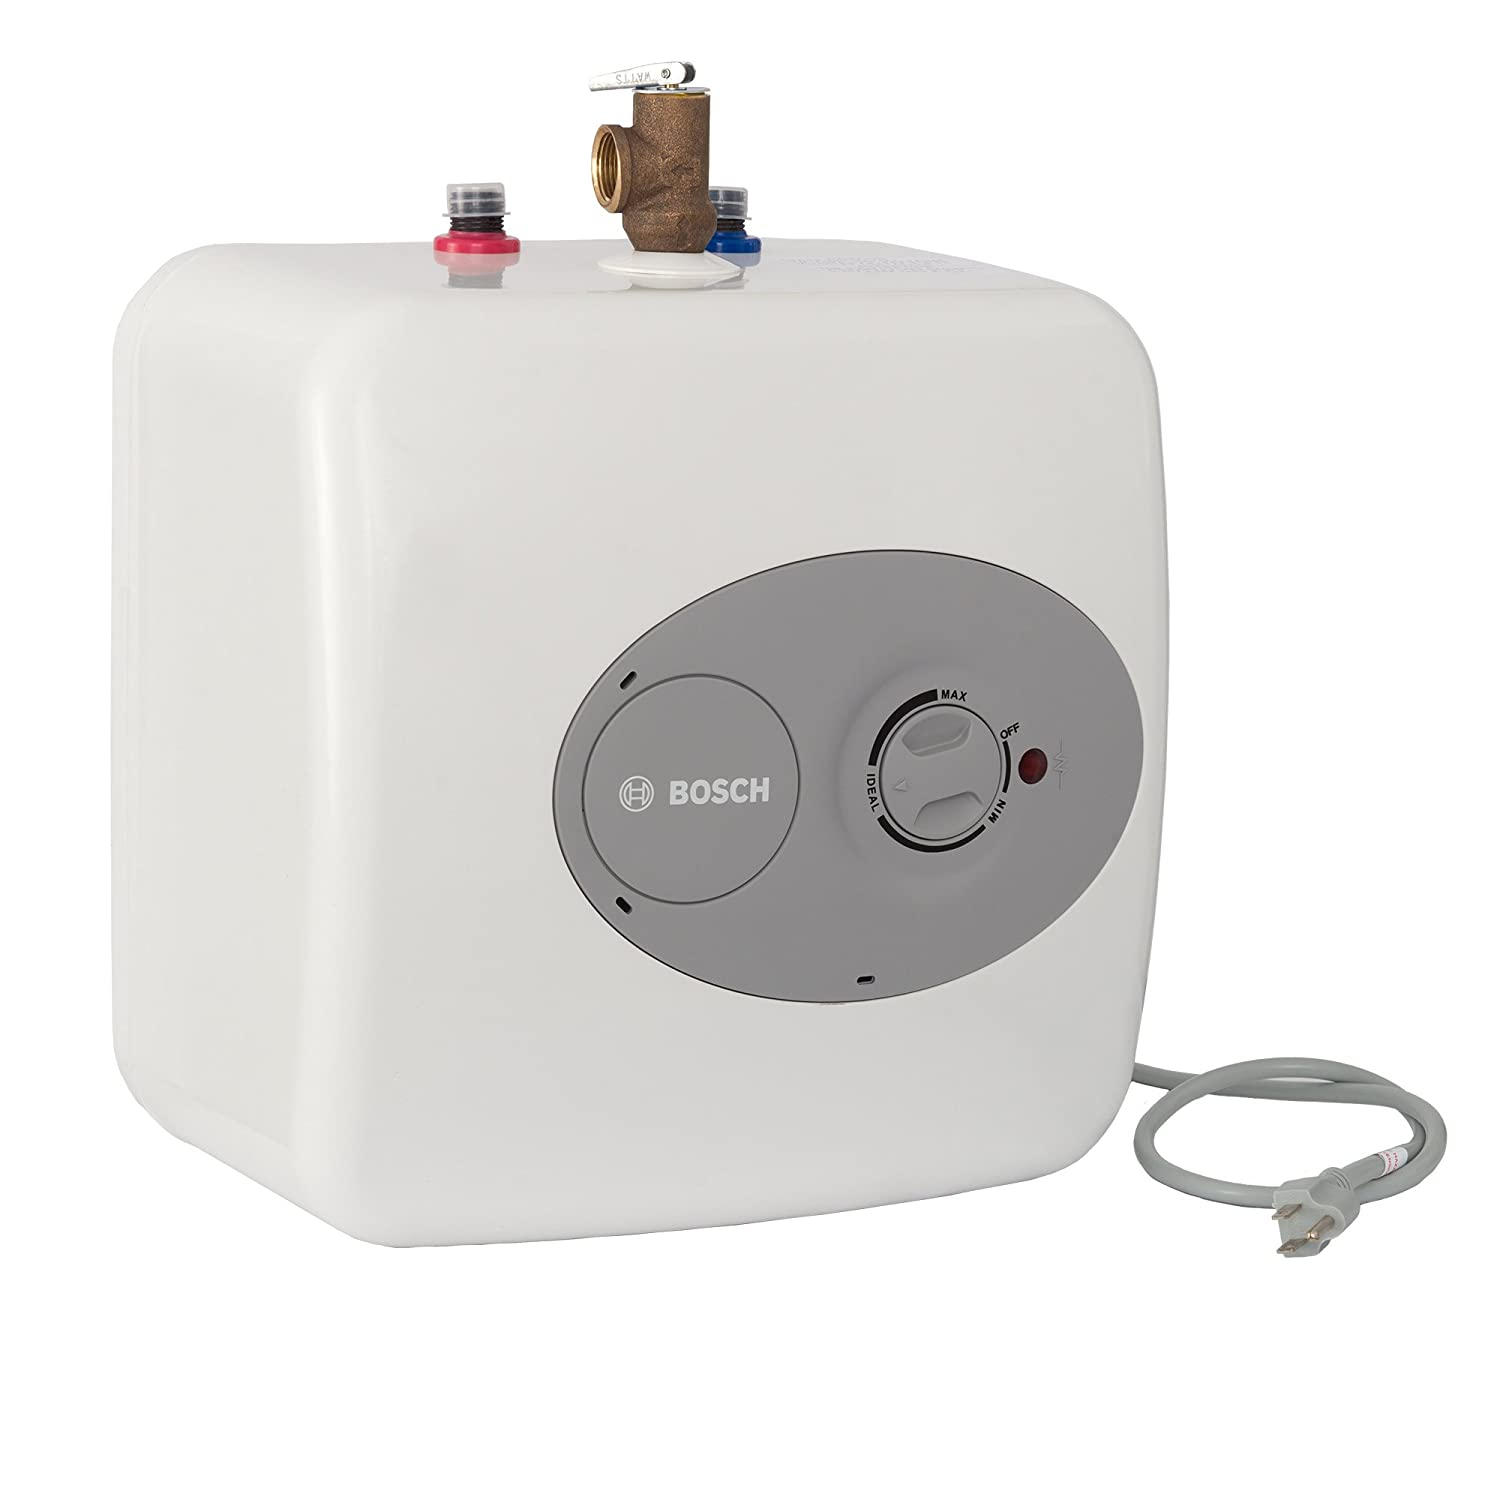 Bosch Electric Mini-Tank Water Heater Tronic 3000 T 2.5-Gallon (ES2.5)- Eliminate Time for Hot Water - Shelf, Wall or Floor Mounted